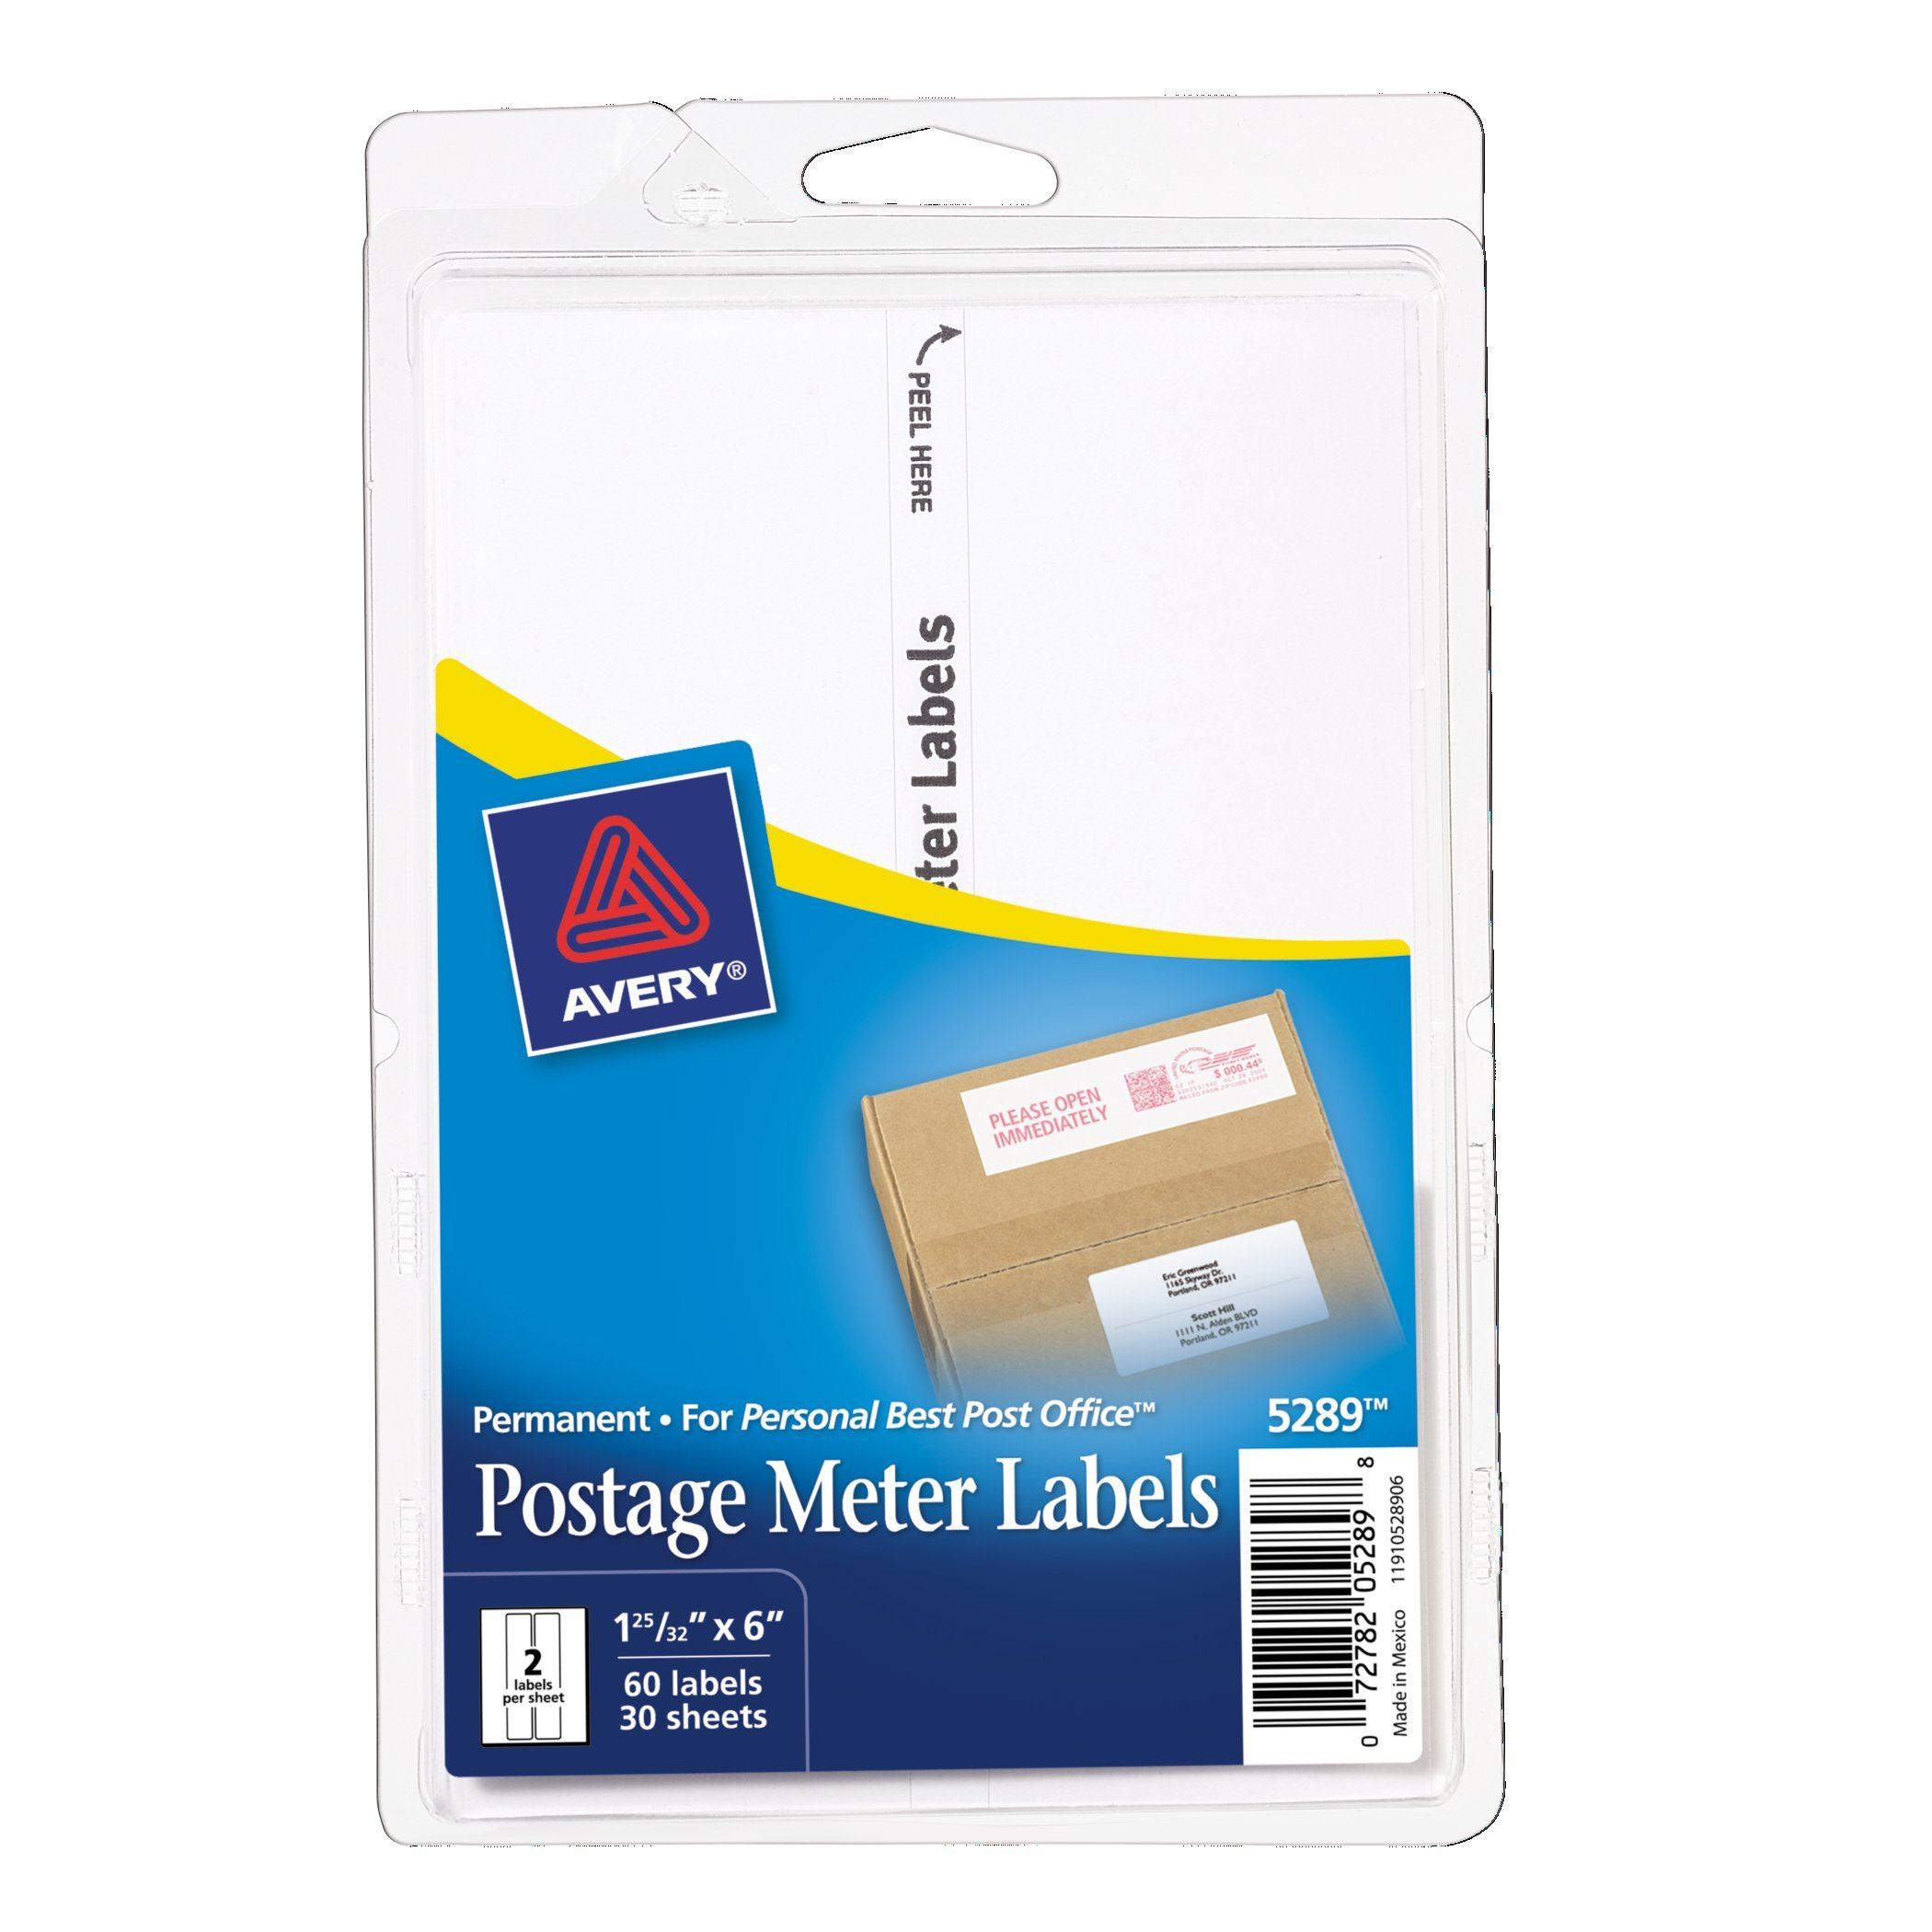 Avery Postage Meter Labels for Personal Post Office 1-25/32'' x 6'', Pack of 60 (5289)